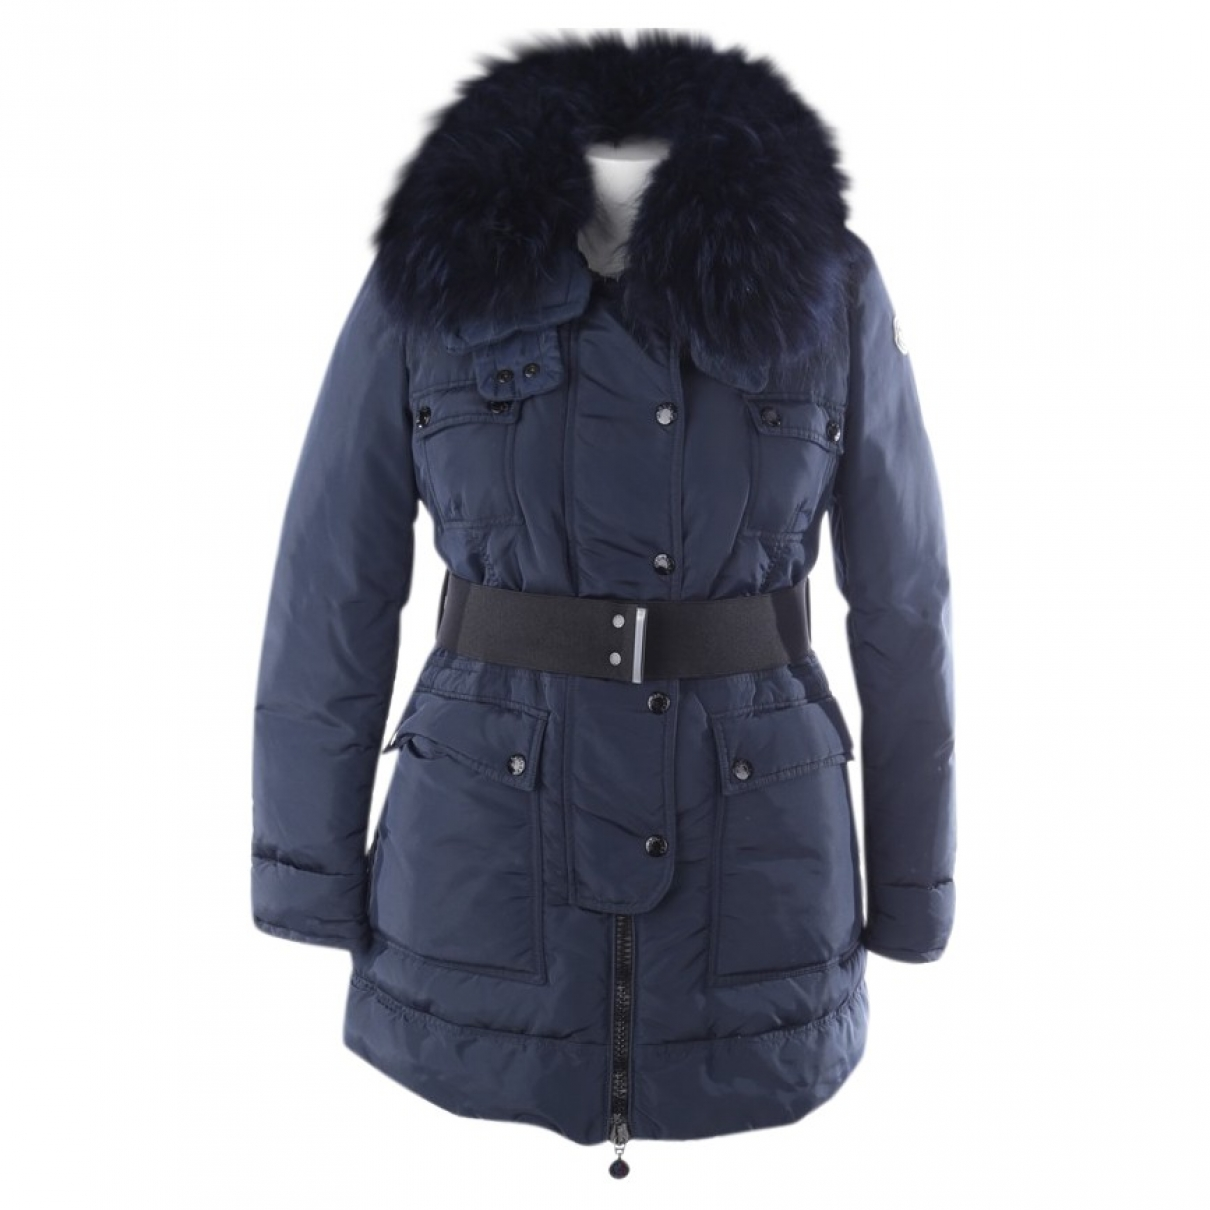 Moncler \N Blue coat for Women 40 FR